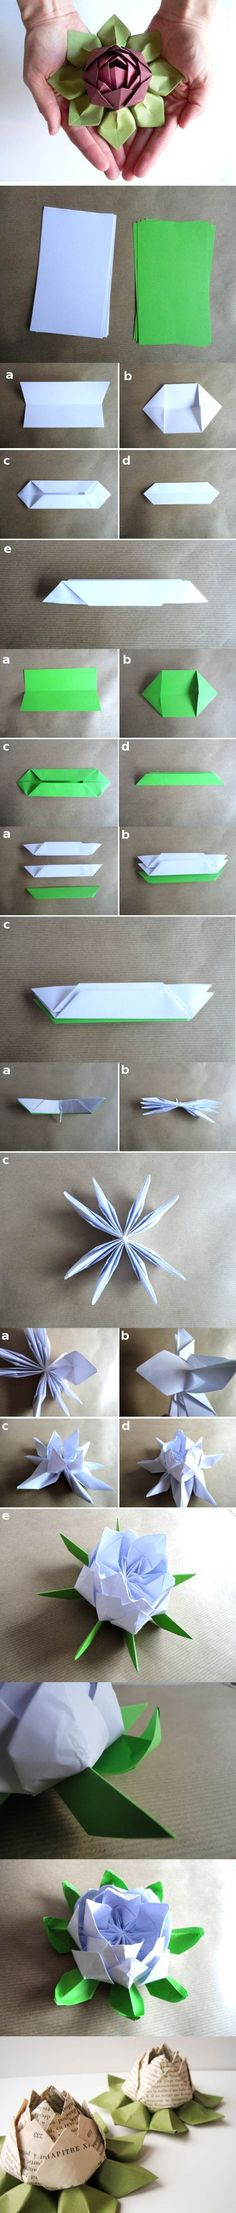 Best Origami Tutorials – Origami Lotus Flower – Simple DIY Origami Tutorial Project - Crafts for adult Diy Origami, Origami And Kirigami, Origami Paper Art, Useful Origami, Origami Tutorial, Diy Paper, Flower Tutorial, Oragami, Modular Origami